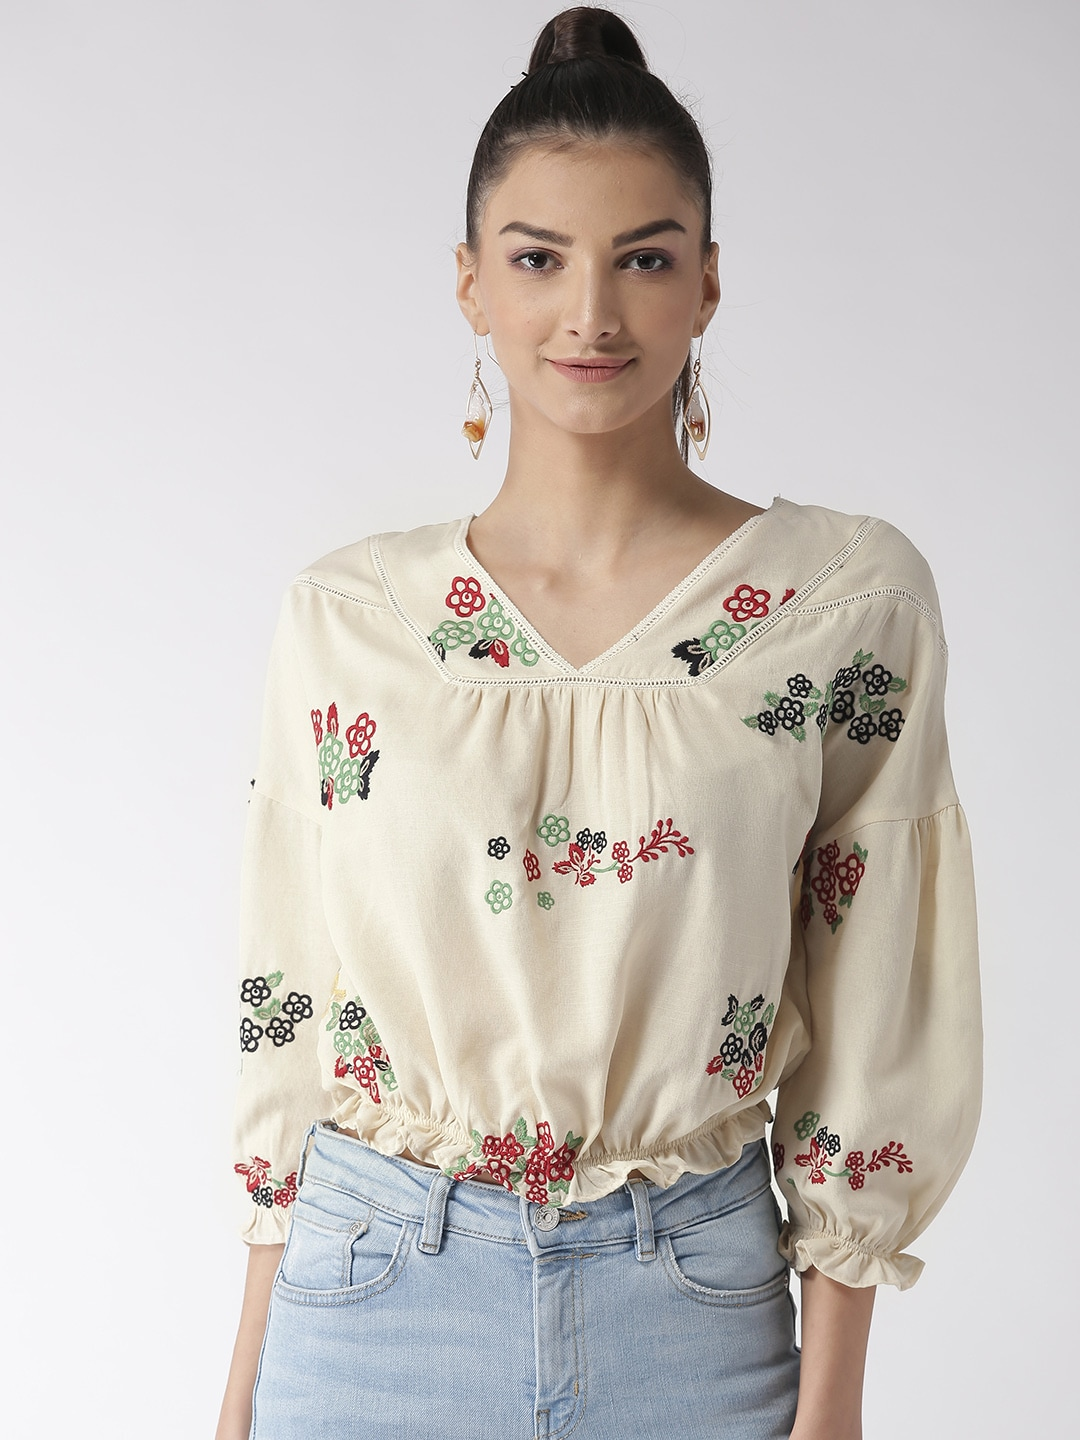 581cdea2bb4 Madame Tops - Buy Madame Top for Women Online in India